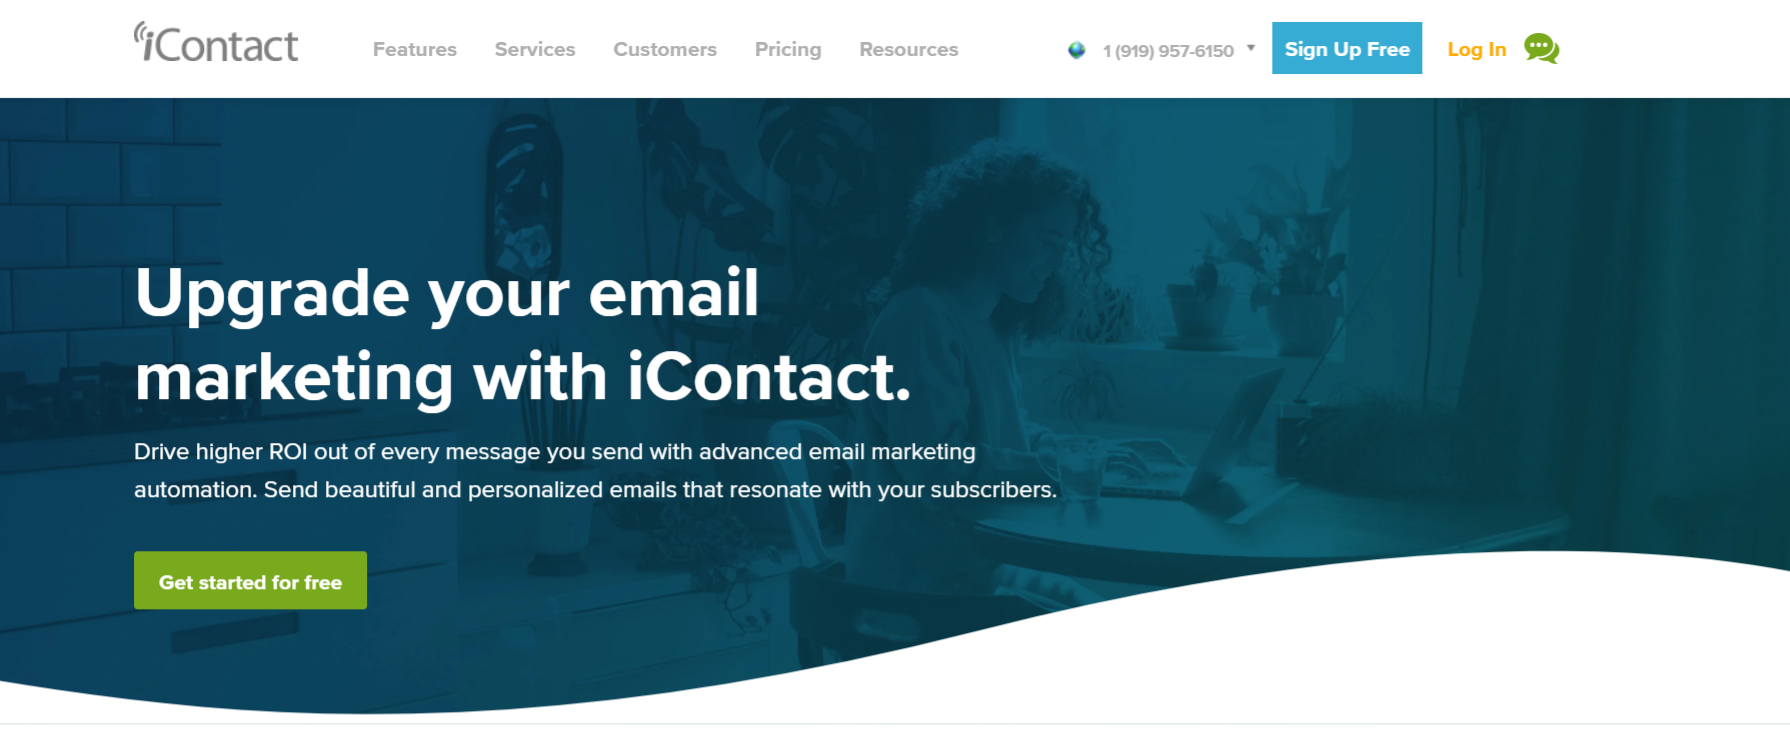 iContact: Online marketing automation tool